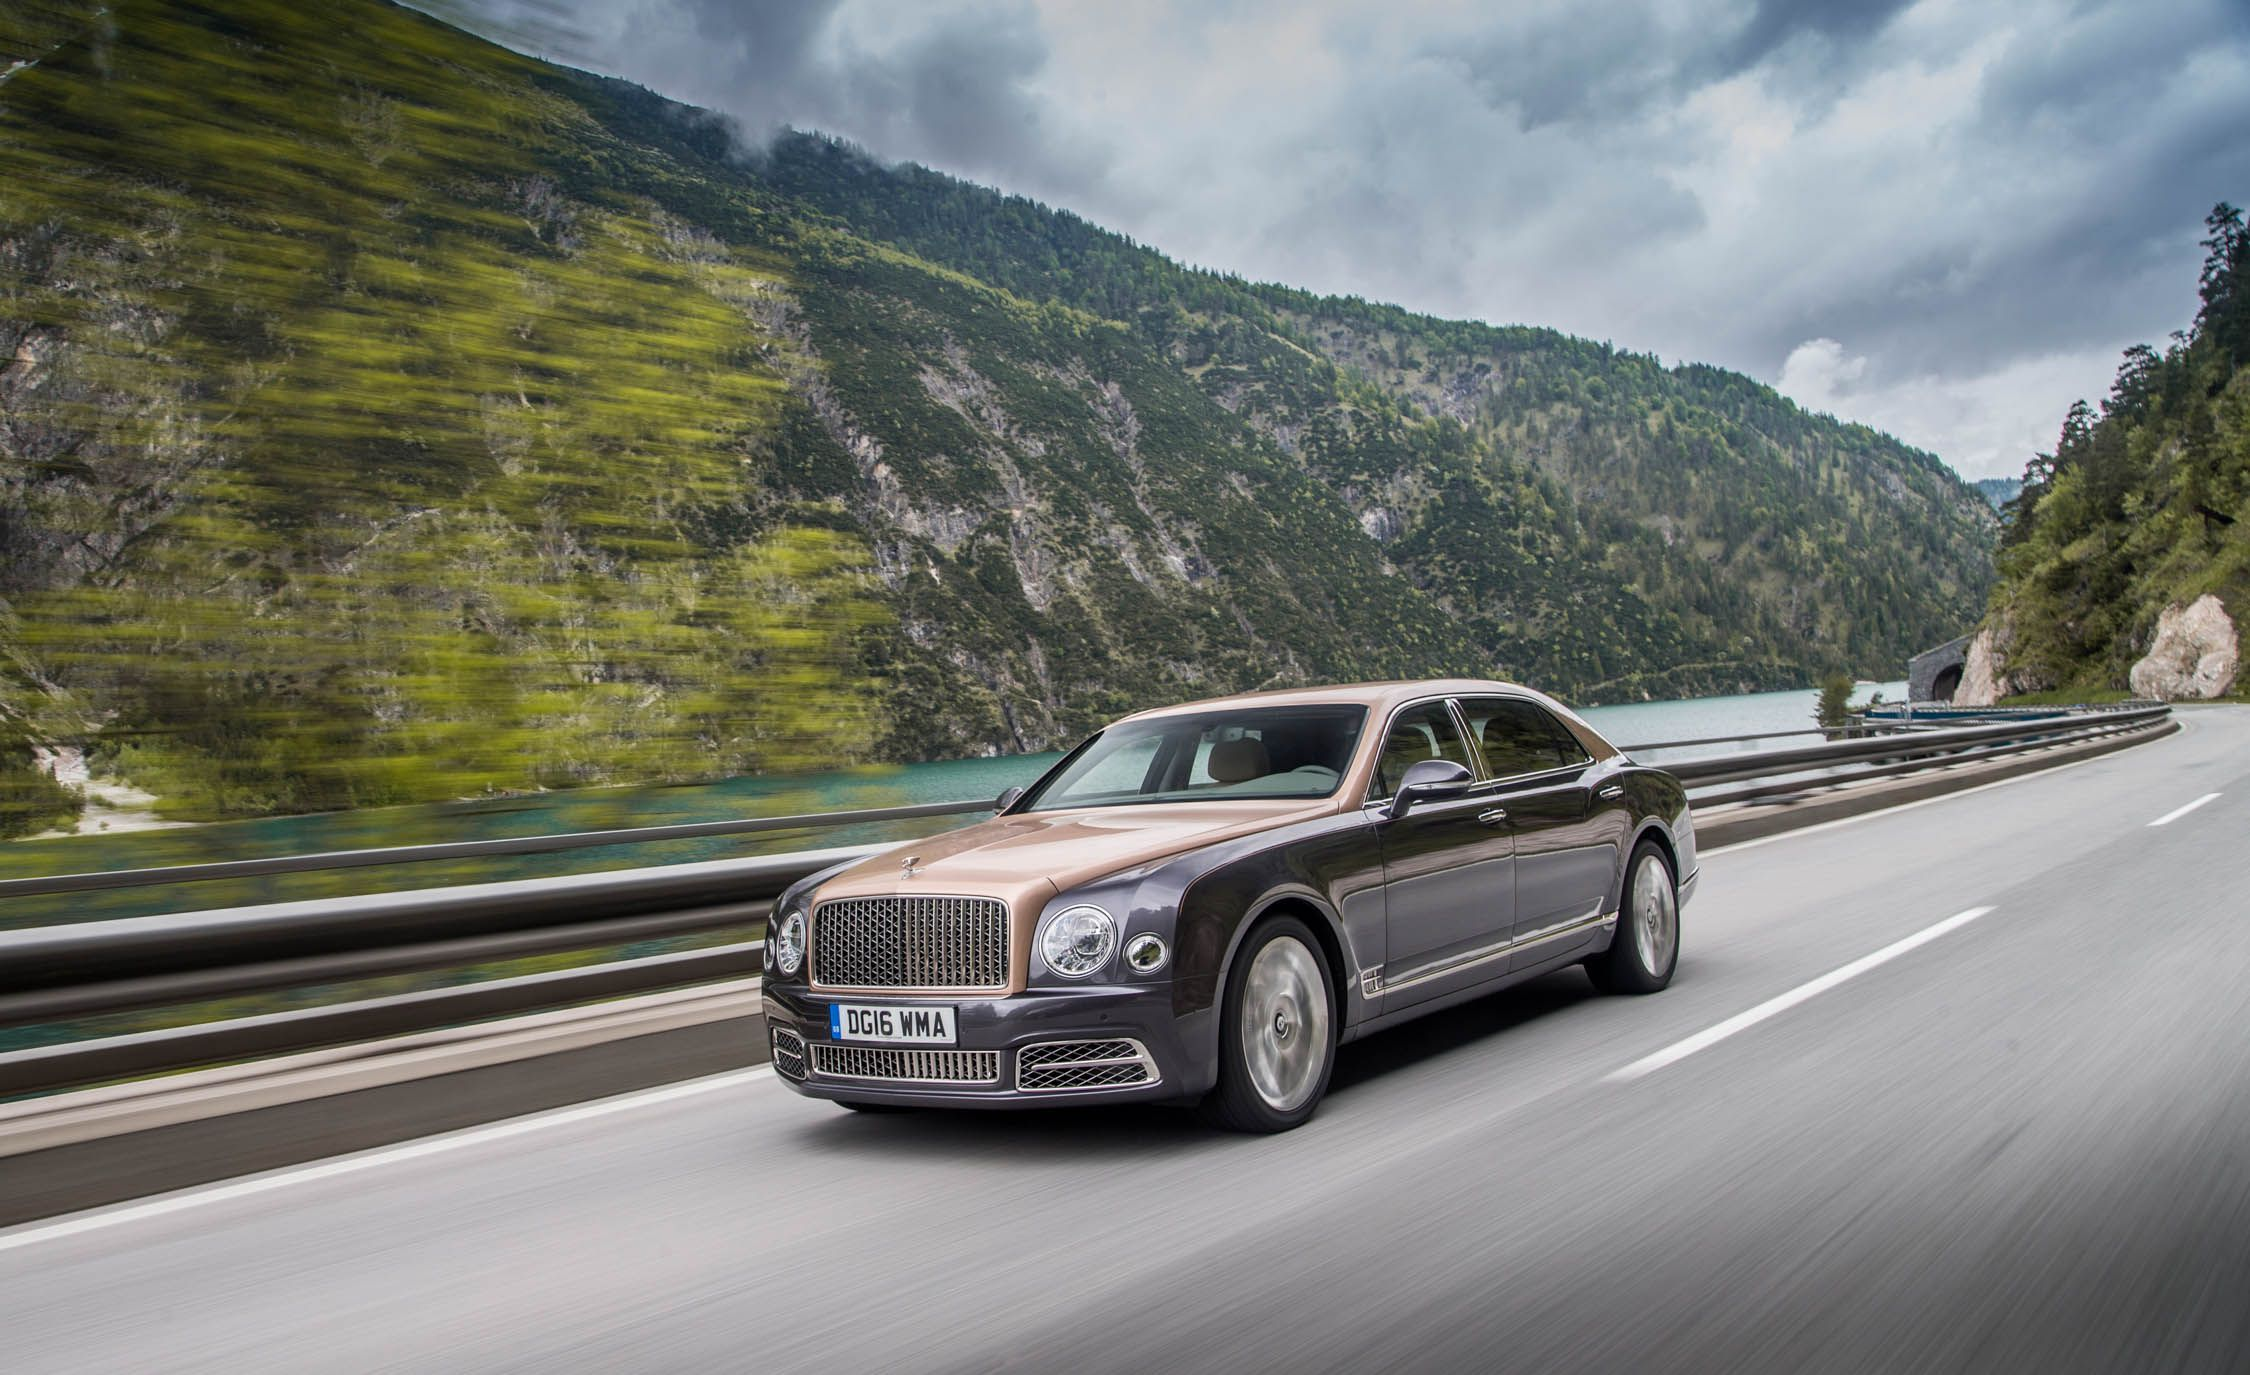 2250x1375 2018 Bentley Mulsanne Reviews | Bentley Mulsanne Price, Photos, and ...